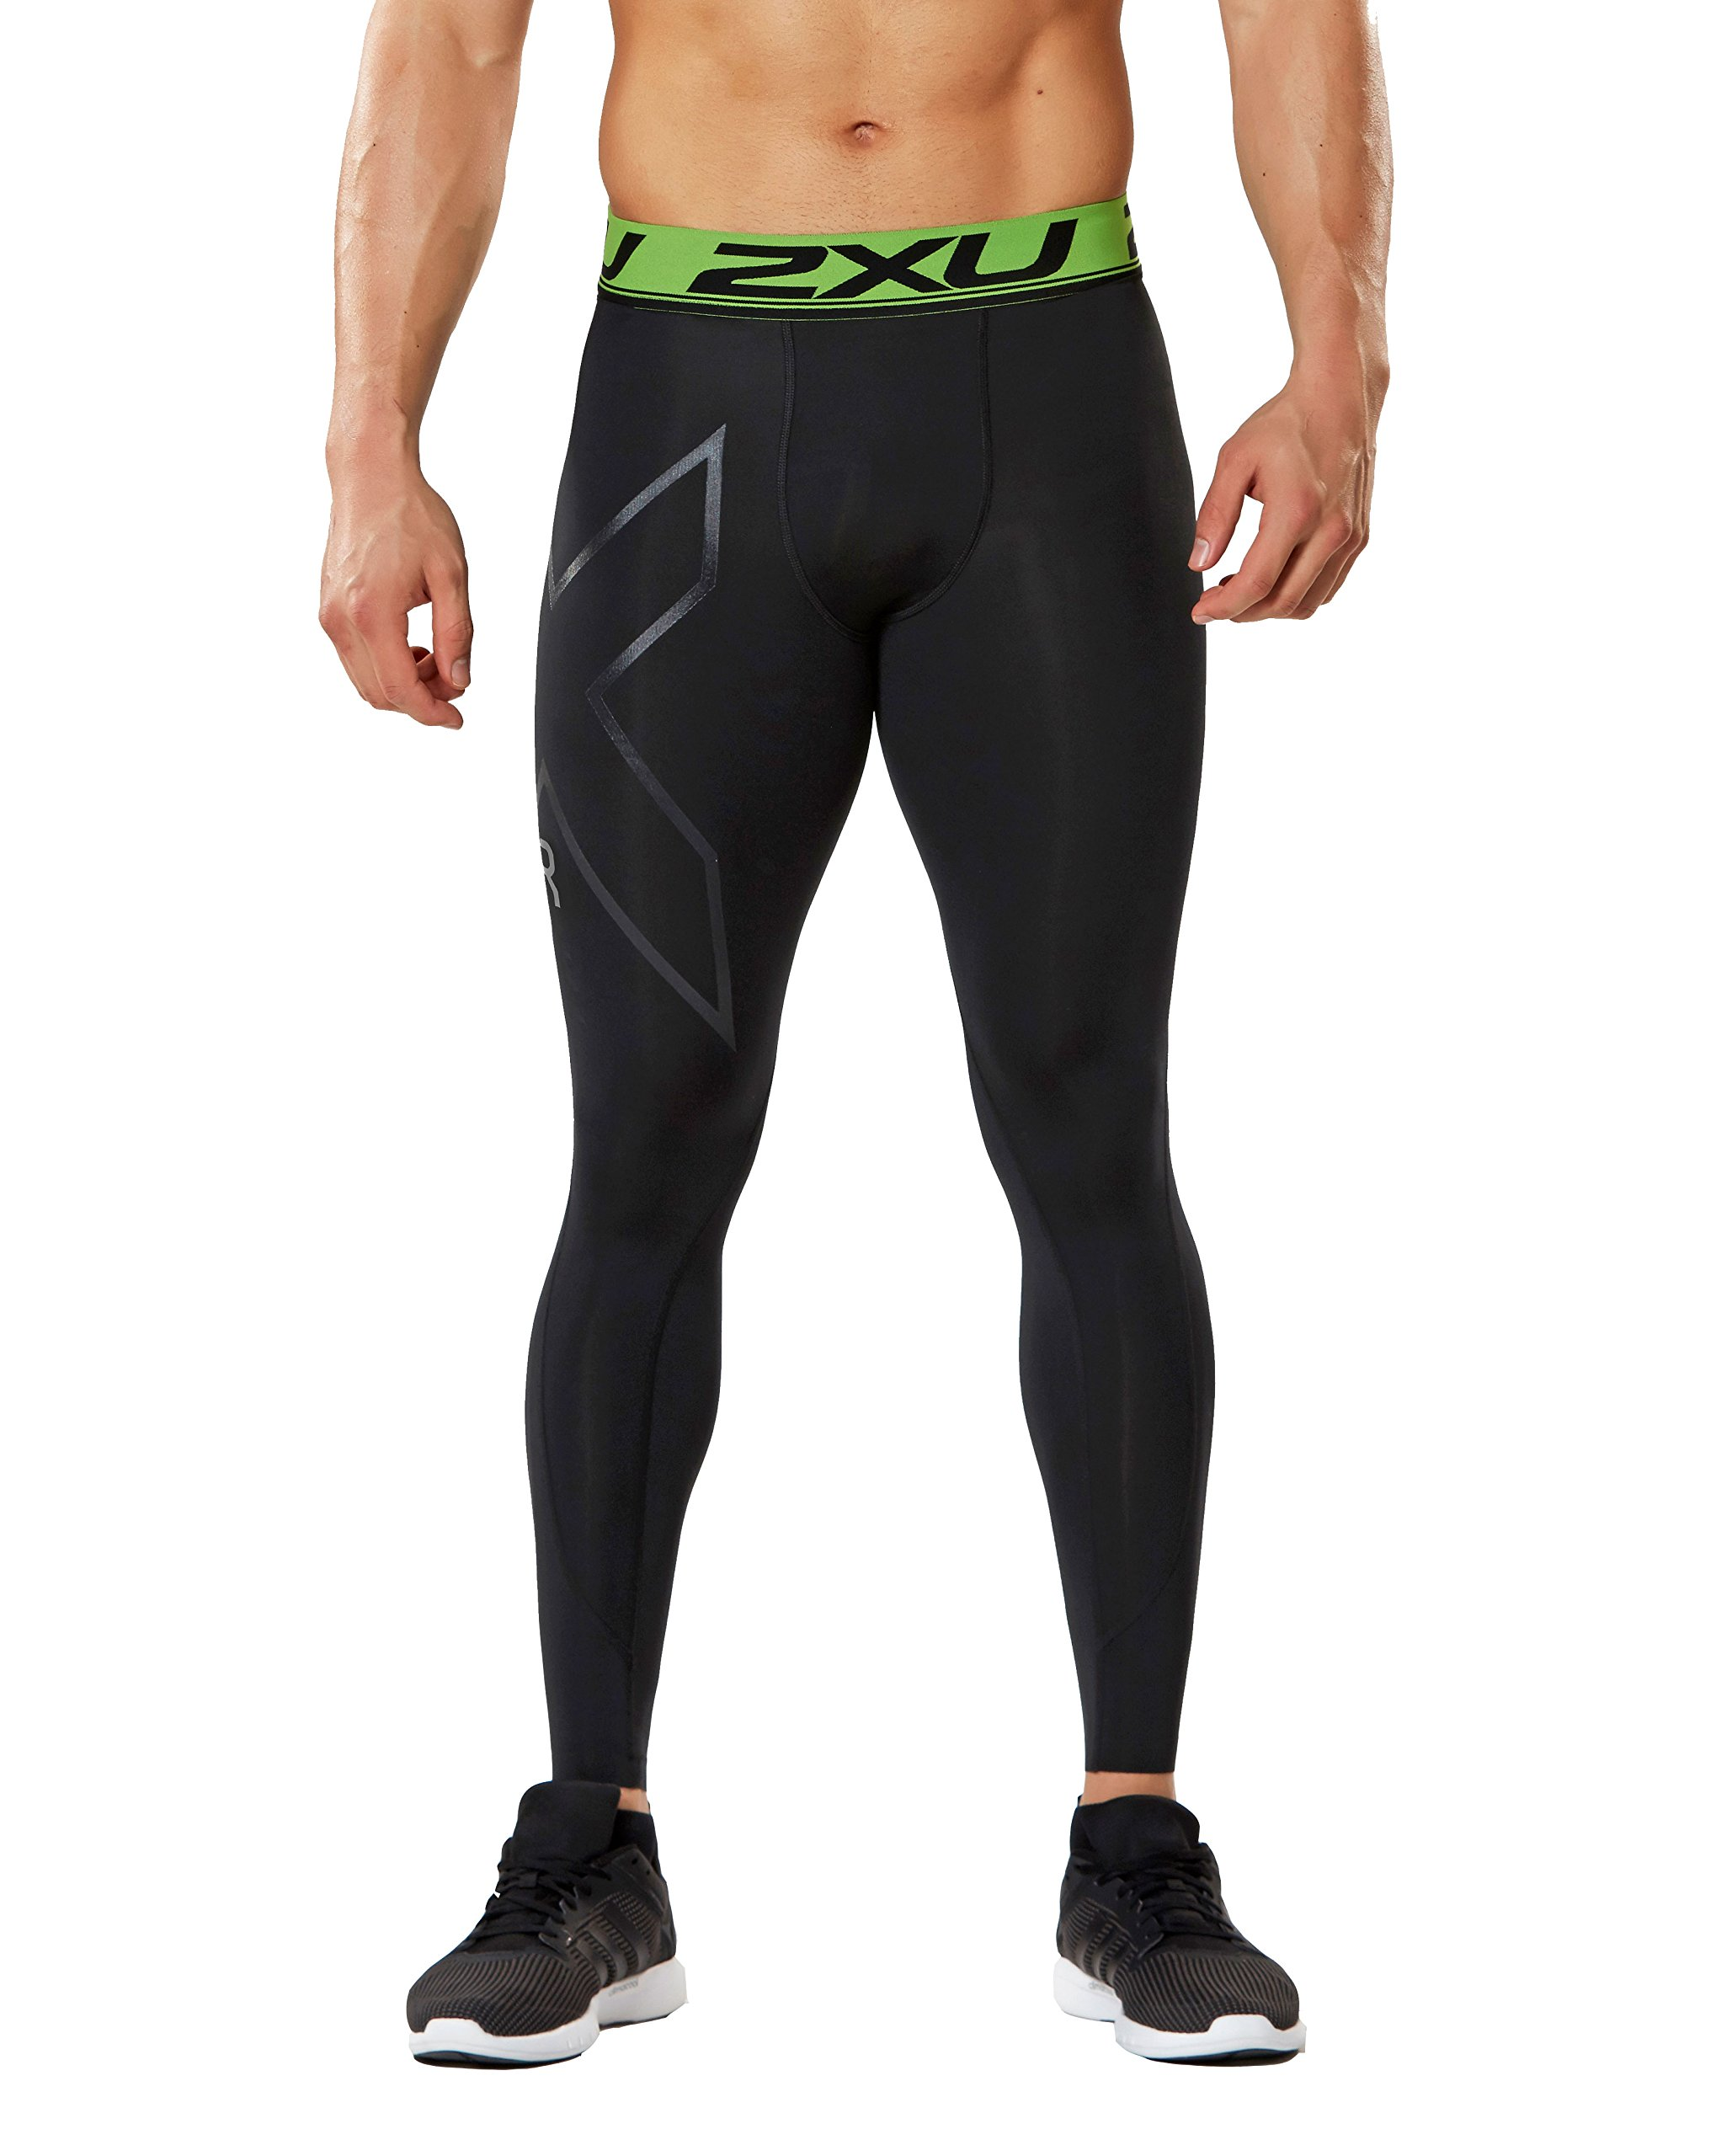 2XU Men's Refresh Recovery Compression Tights (Black/Nero, XX Large) by 2XU (Image #2)